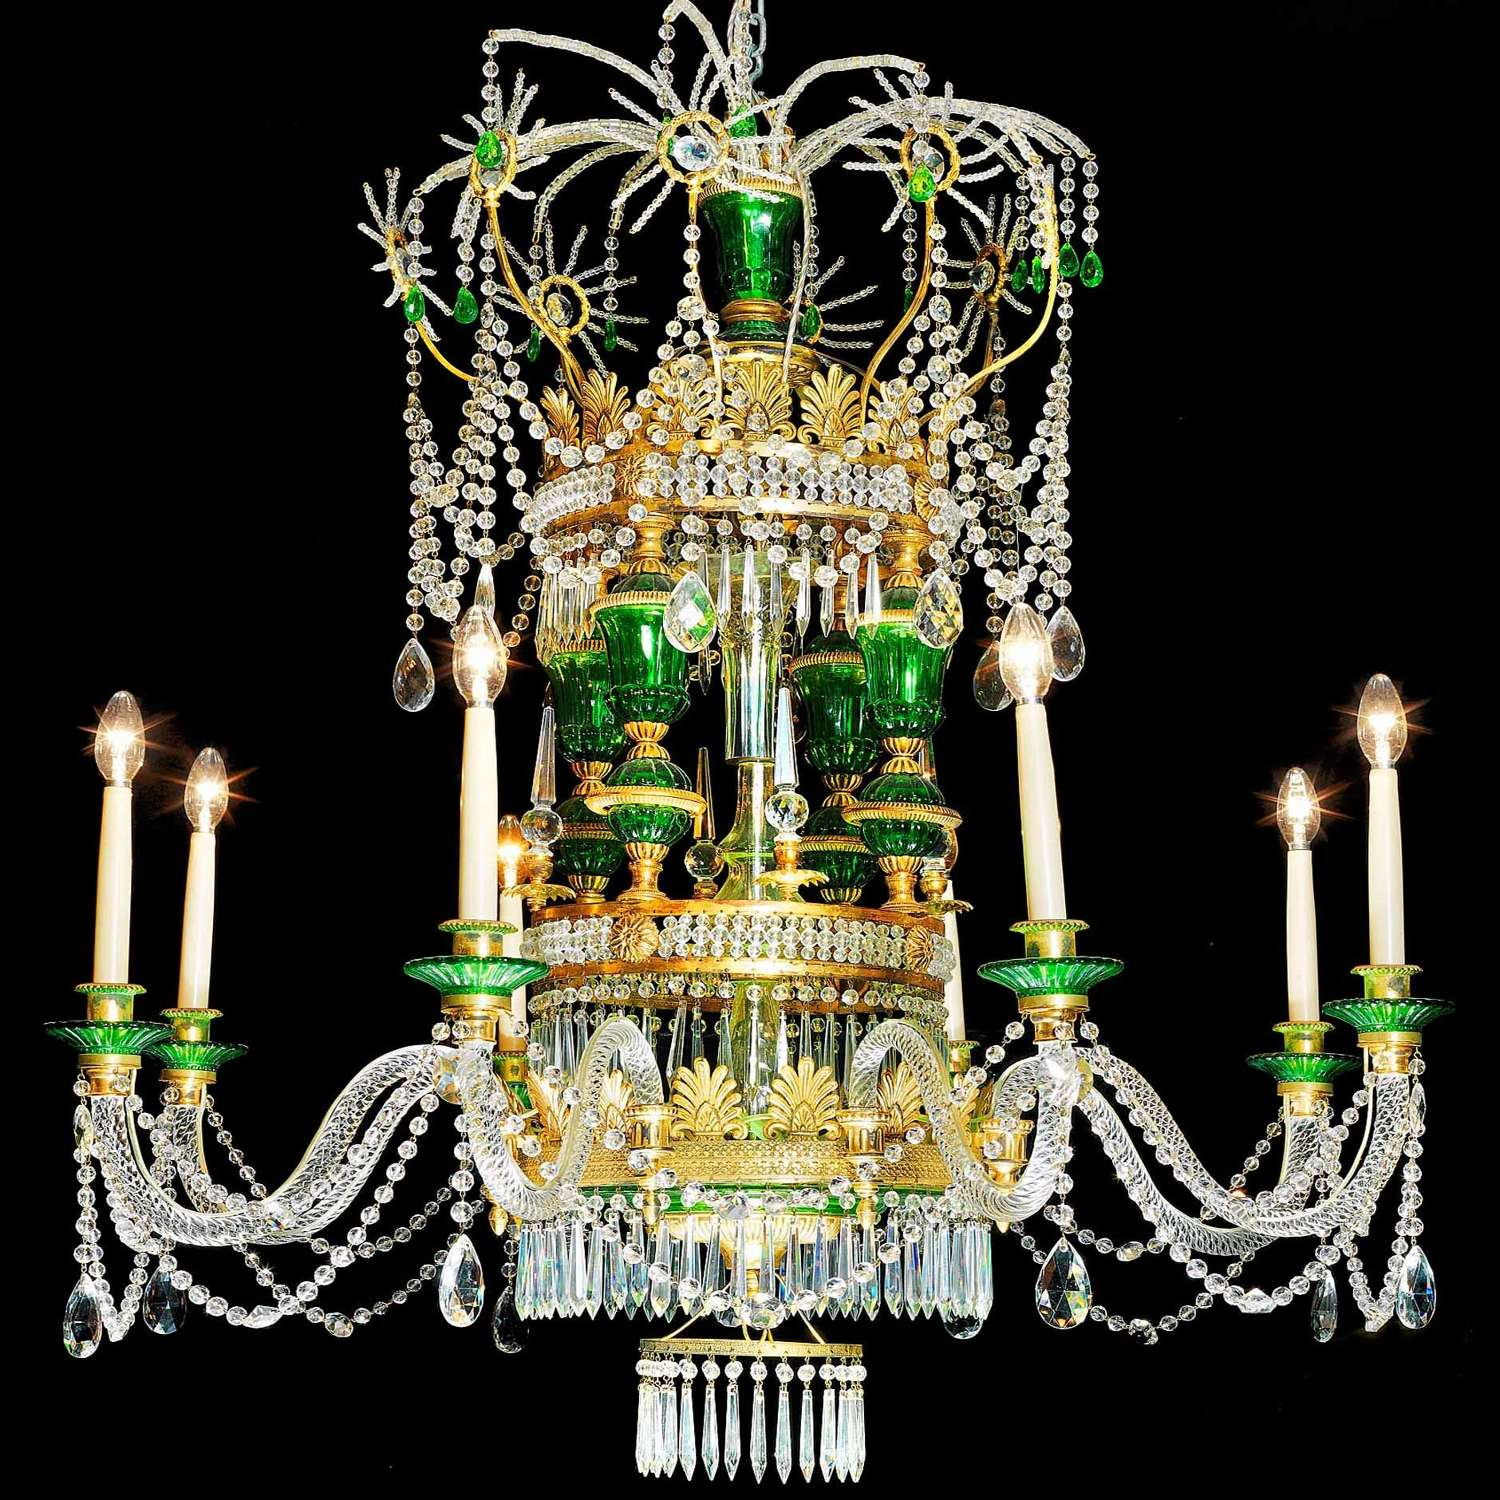 LARGE RUSSIAN CHANDELIER IN THE 18THC EMPIRE NEO CLASSICAL MANNER